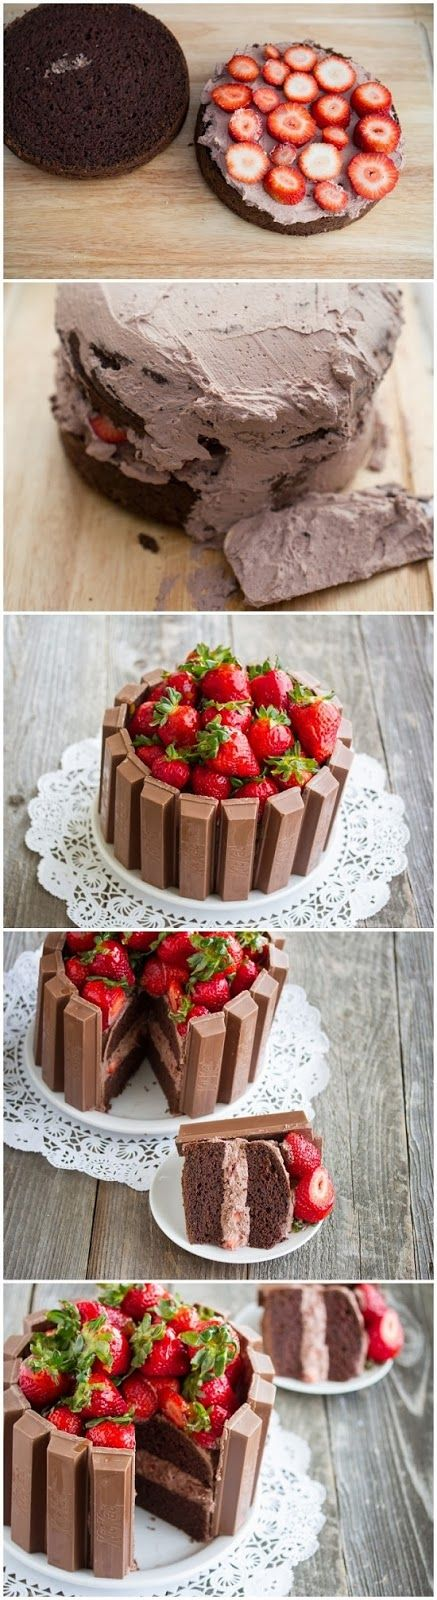 How To Strawberry Kit Kat Cake